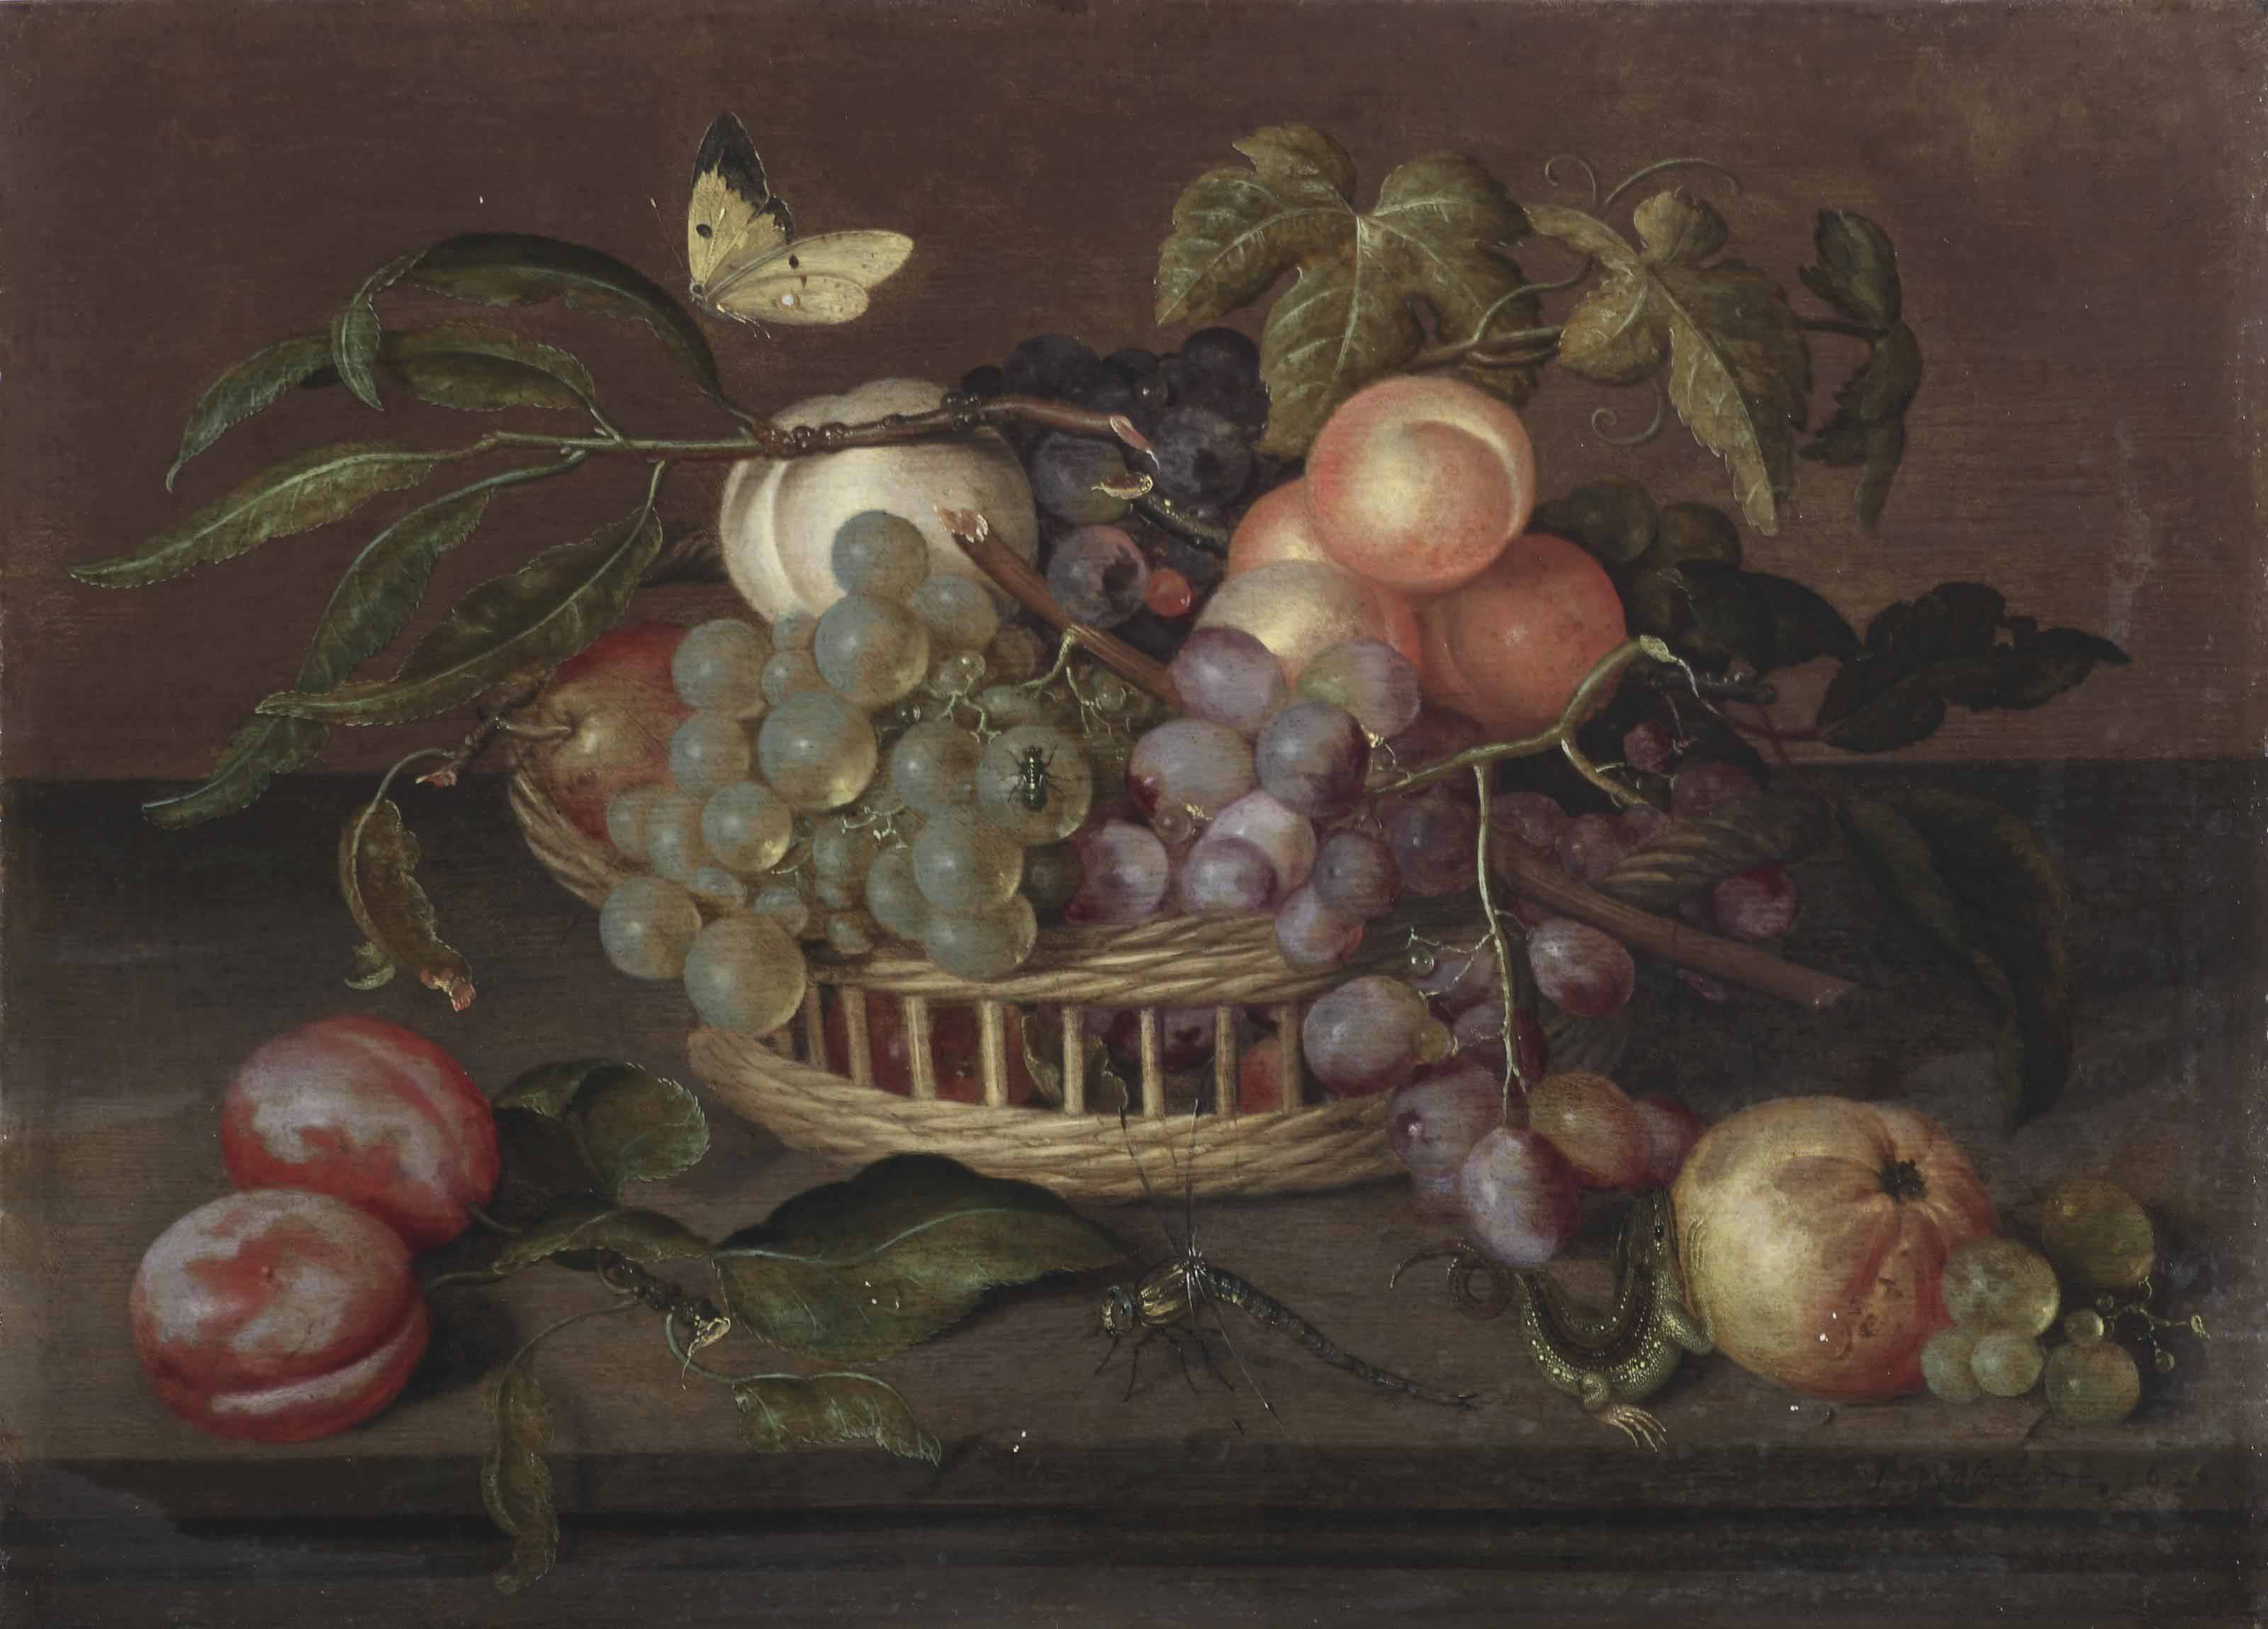 https://www.christies.com/img/LotImages/2014/AMS/2014_AMS_03047_0051_000(johannes_bosschaert_a_wicker_basket_with_white_and_blue_grapes_peaches).jpg